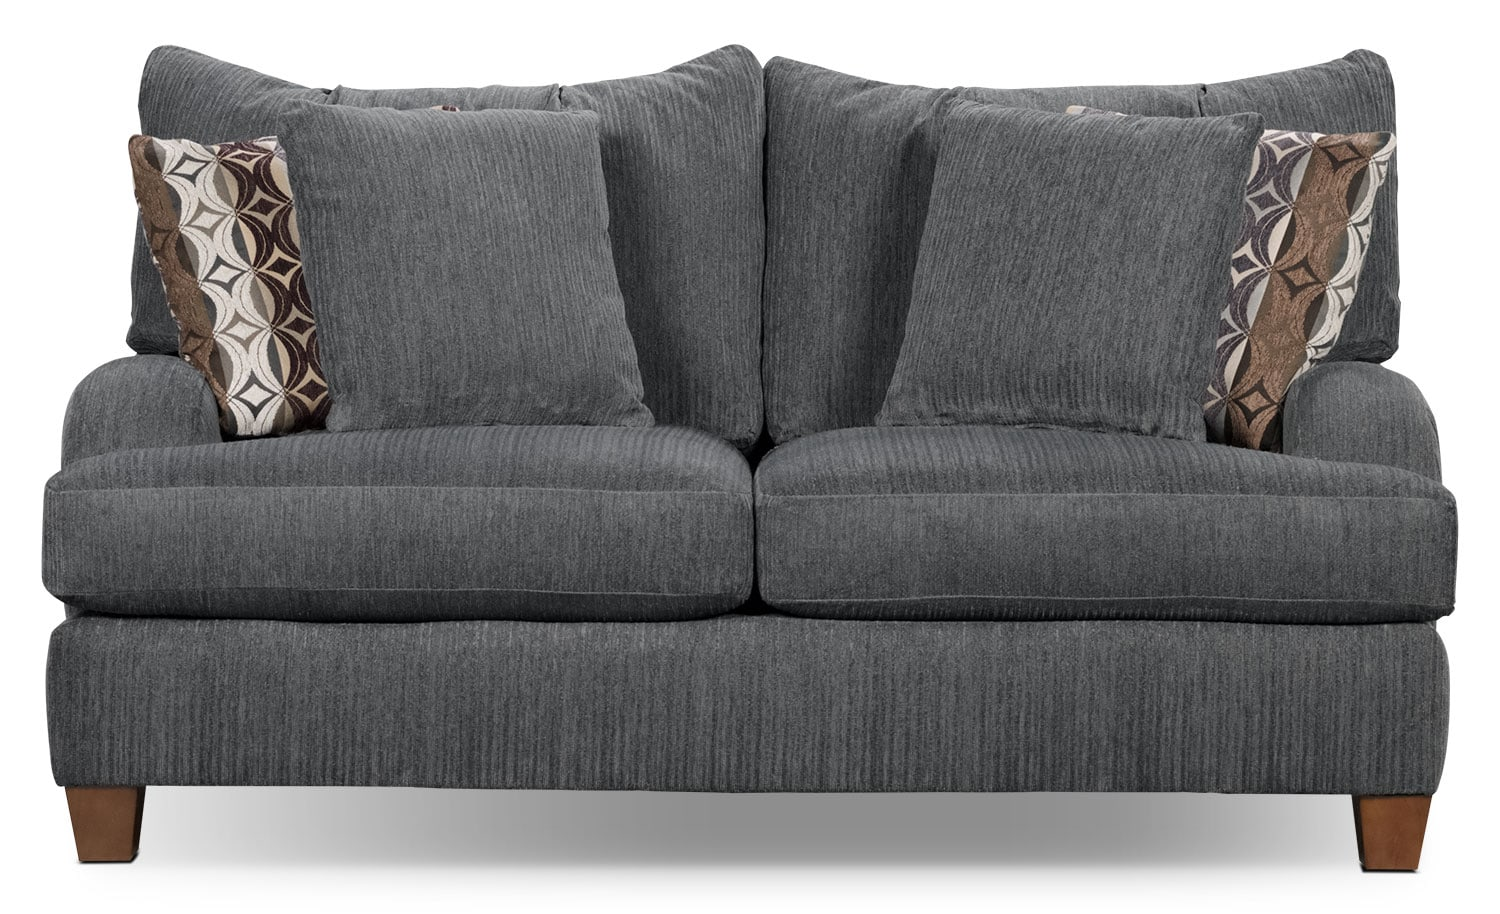 Living Room Furniture - Putty Chenille Loveseat - Grey